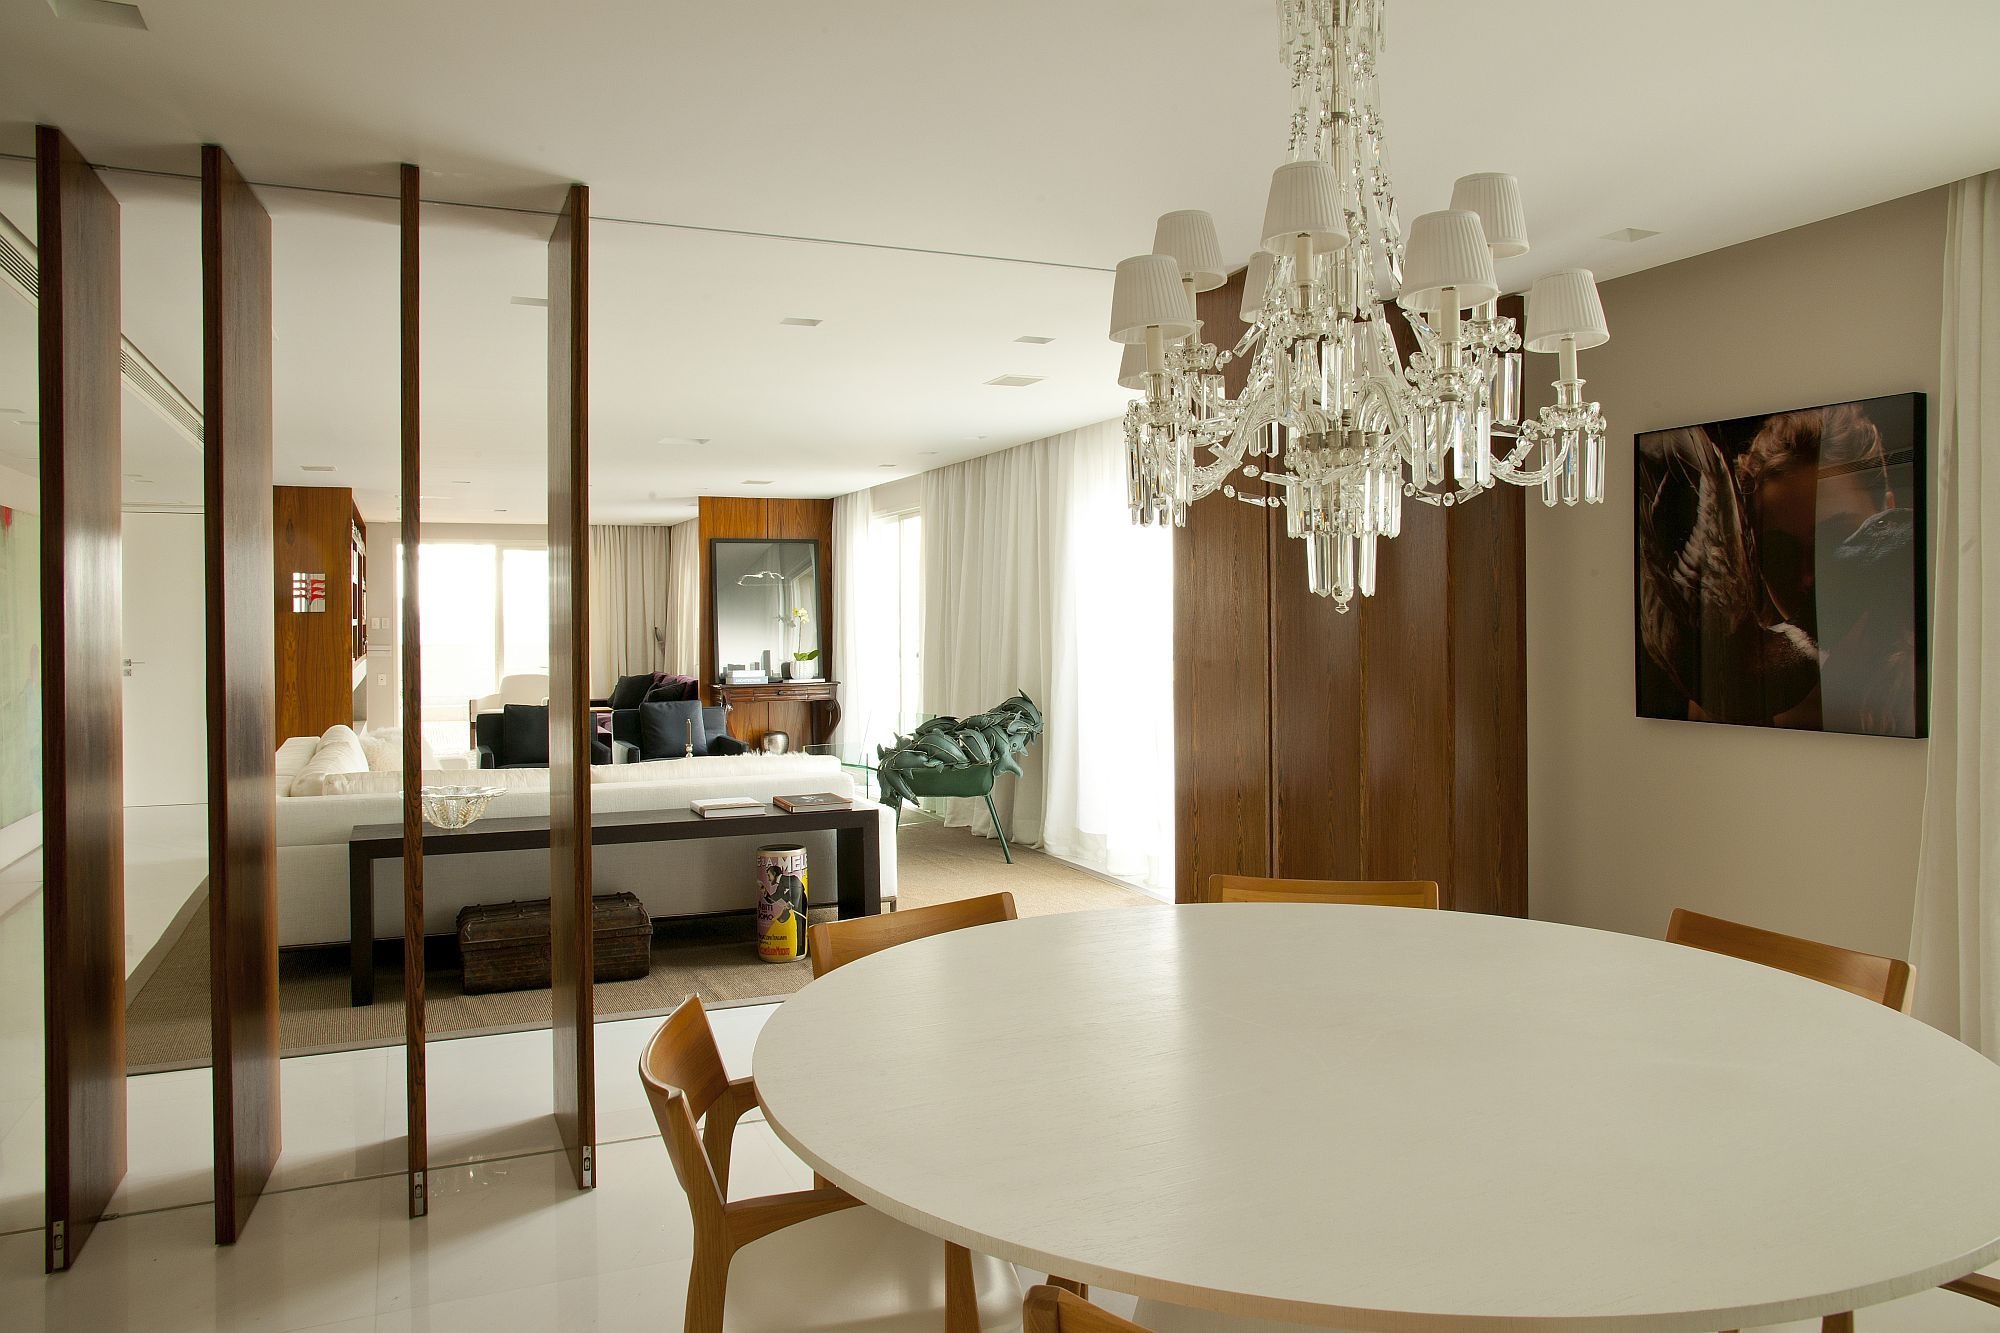 Stunningly Sophisticated Penthouse In Sao Paulo Designed For The Newly Wed Modern Dining Room Contemporary Bathrooms Classic Chandeliers